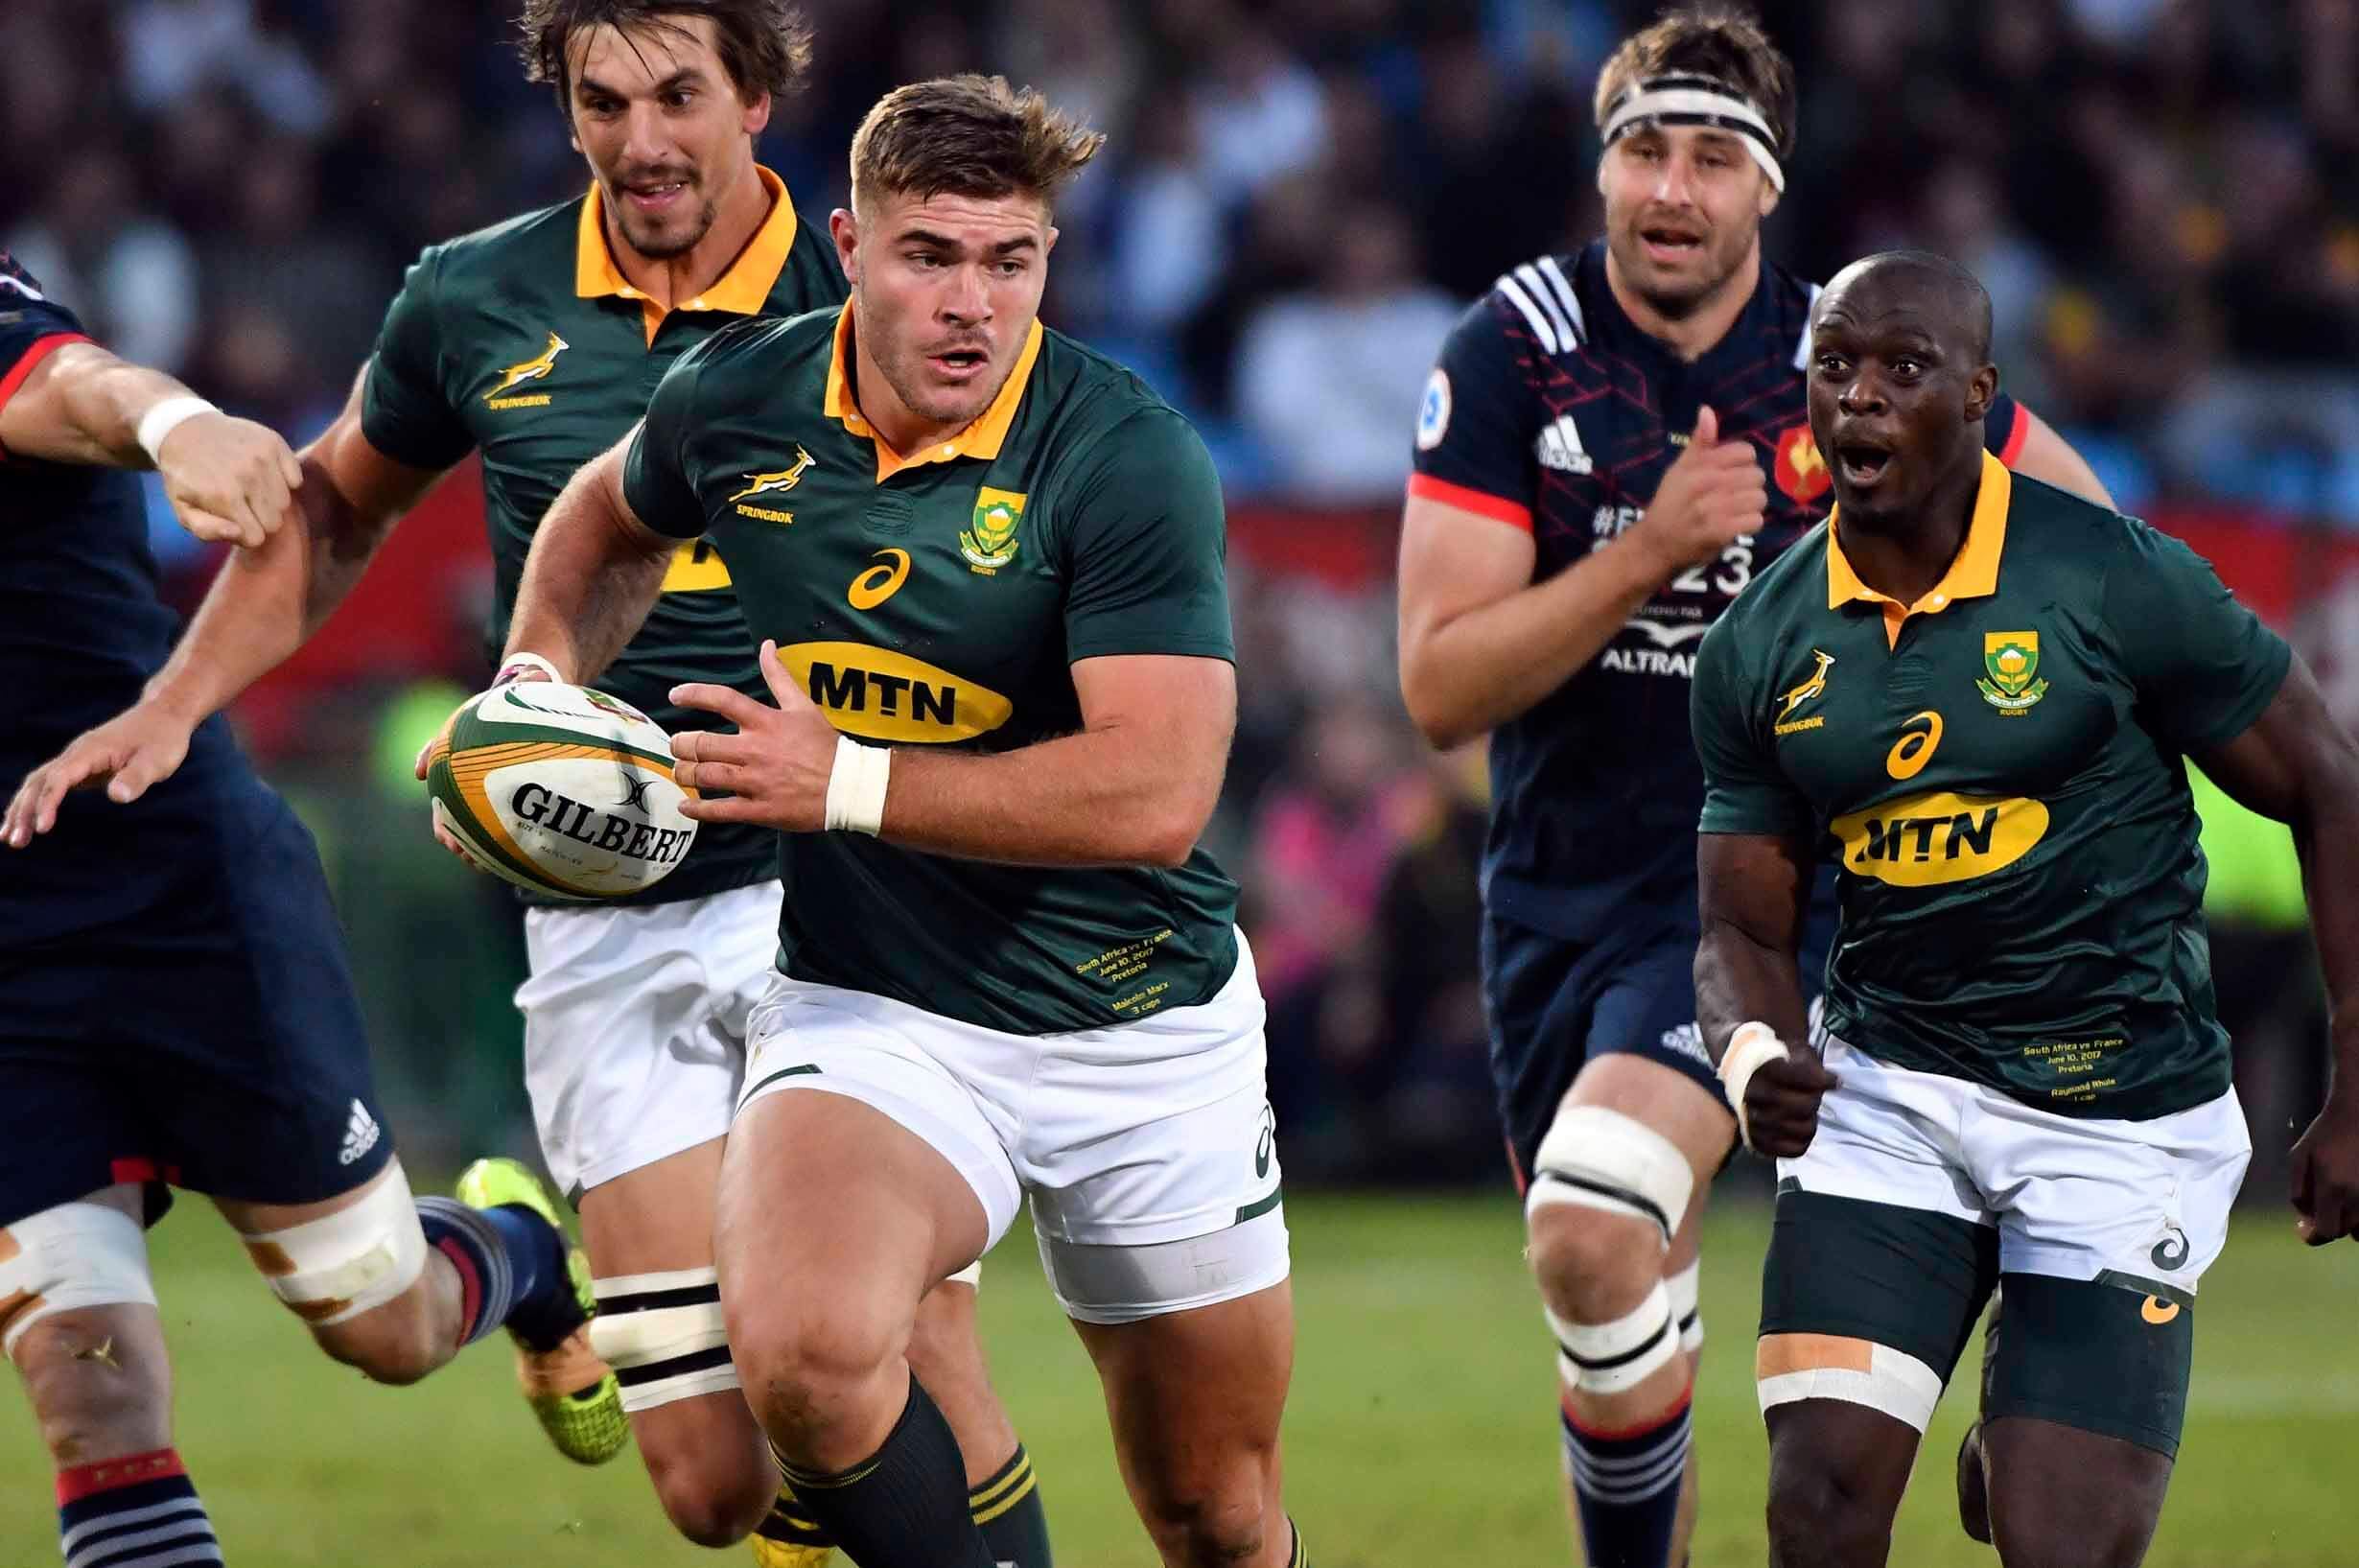 Malcolm Marx | How Good Is The Bok Hooker? | Rugby Championship